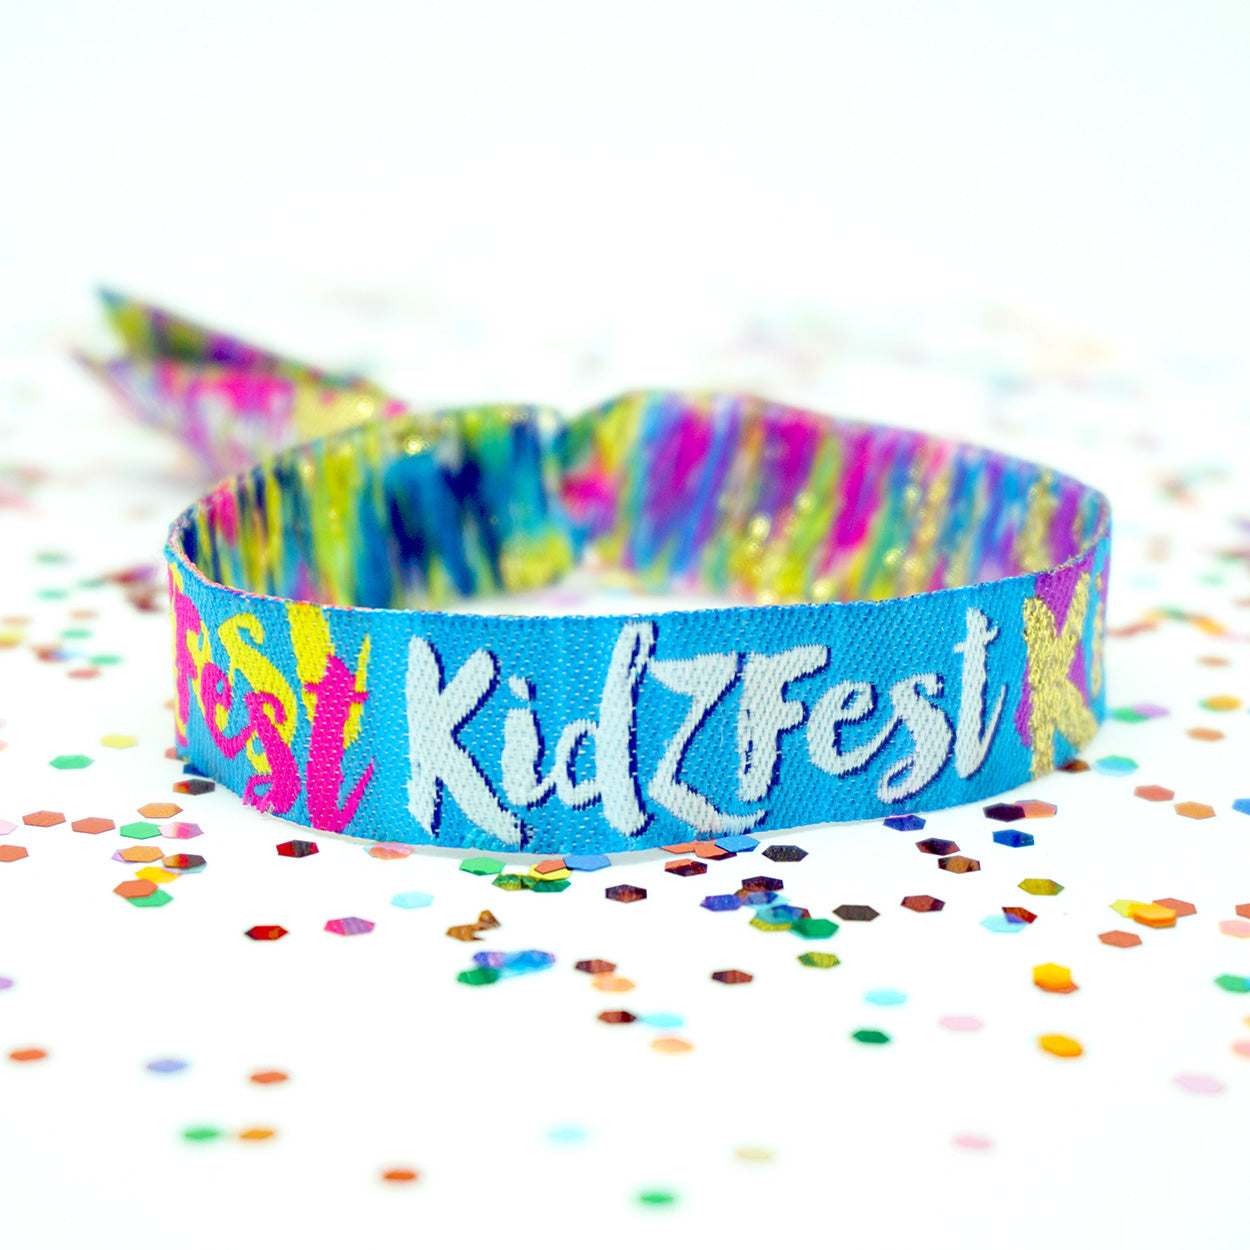 kidzfest kids childrens festival party wristbands